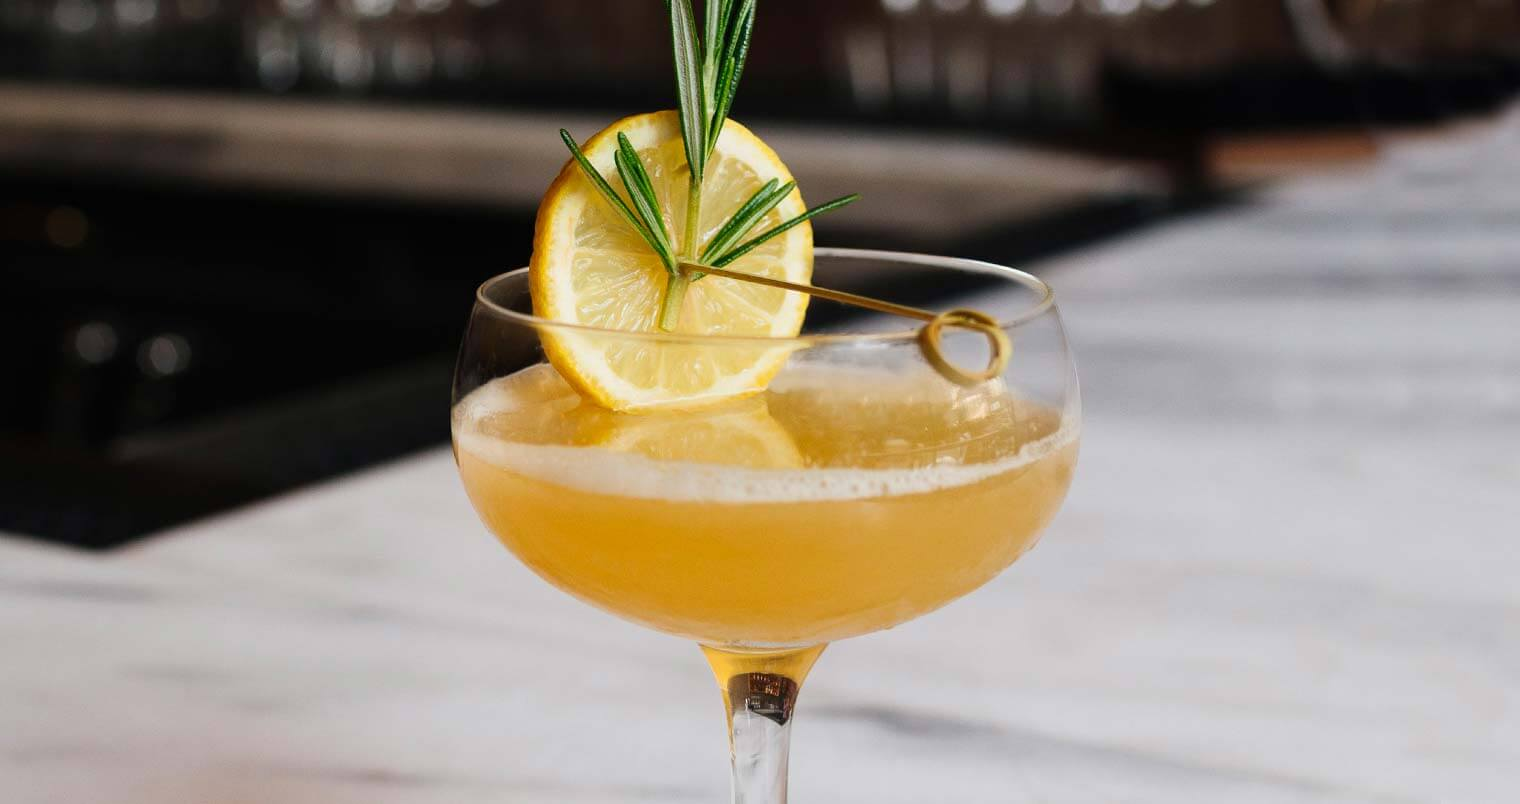 Basil Hayden's Spiced Honey Ginger, featured image